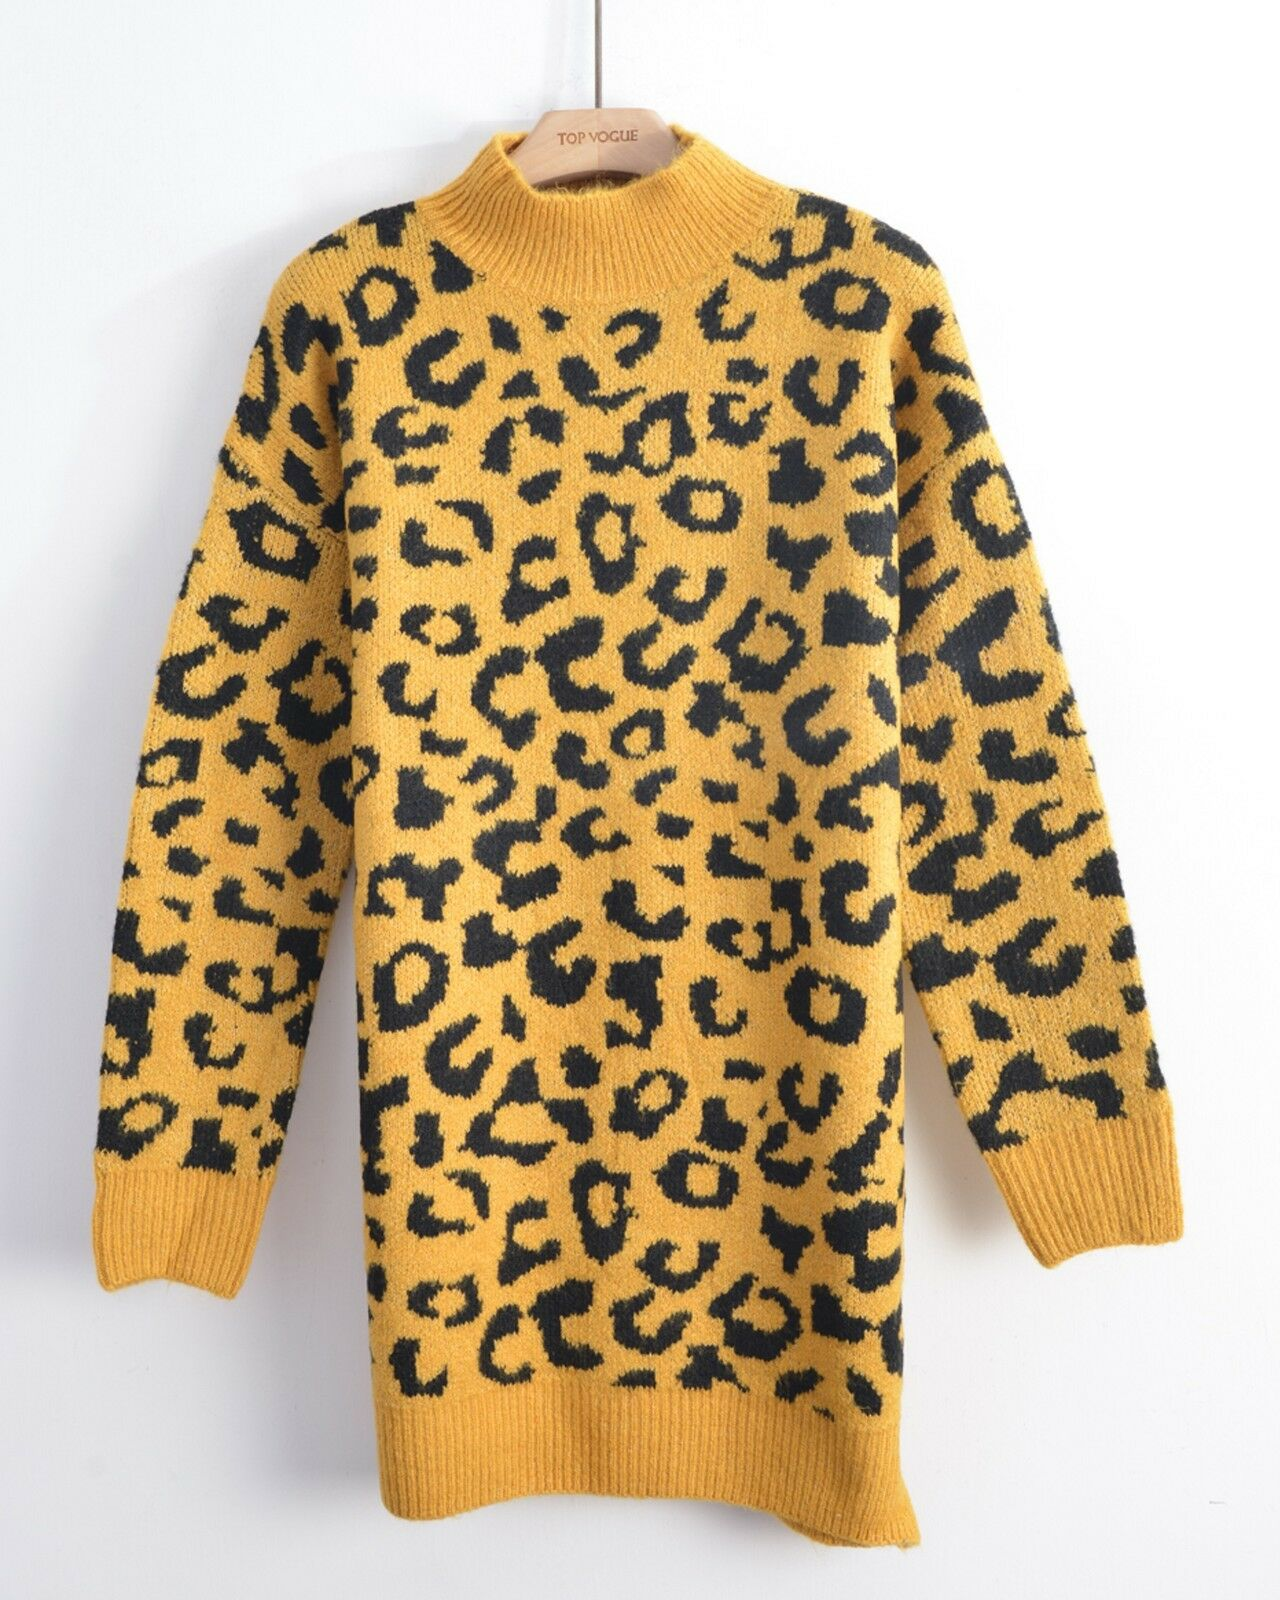 CY BOUTIQUE Trendy leopard animal wild print super soft fluffy long Jumper